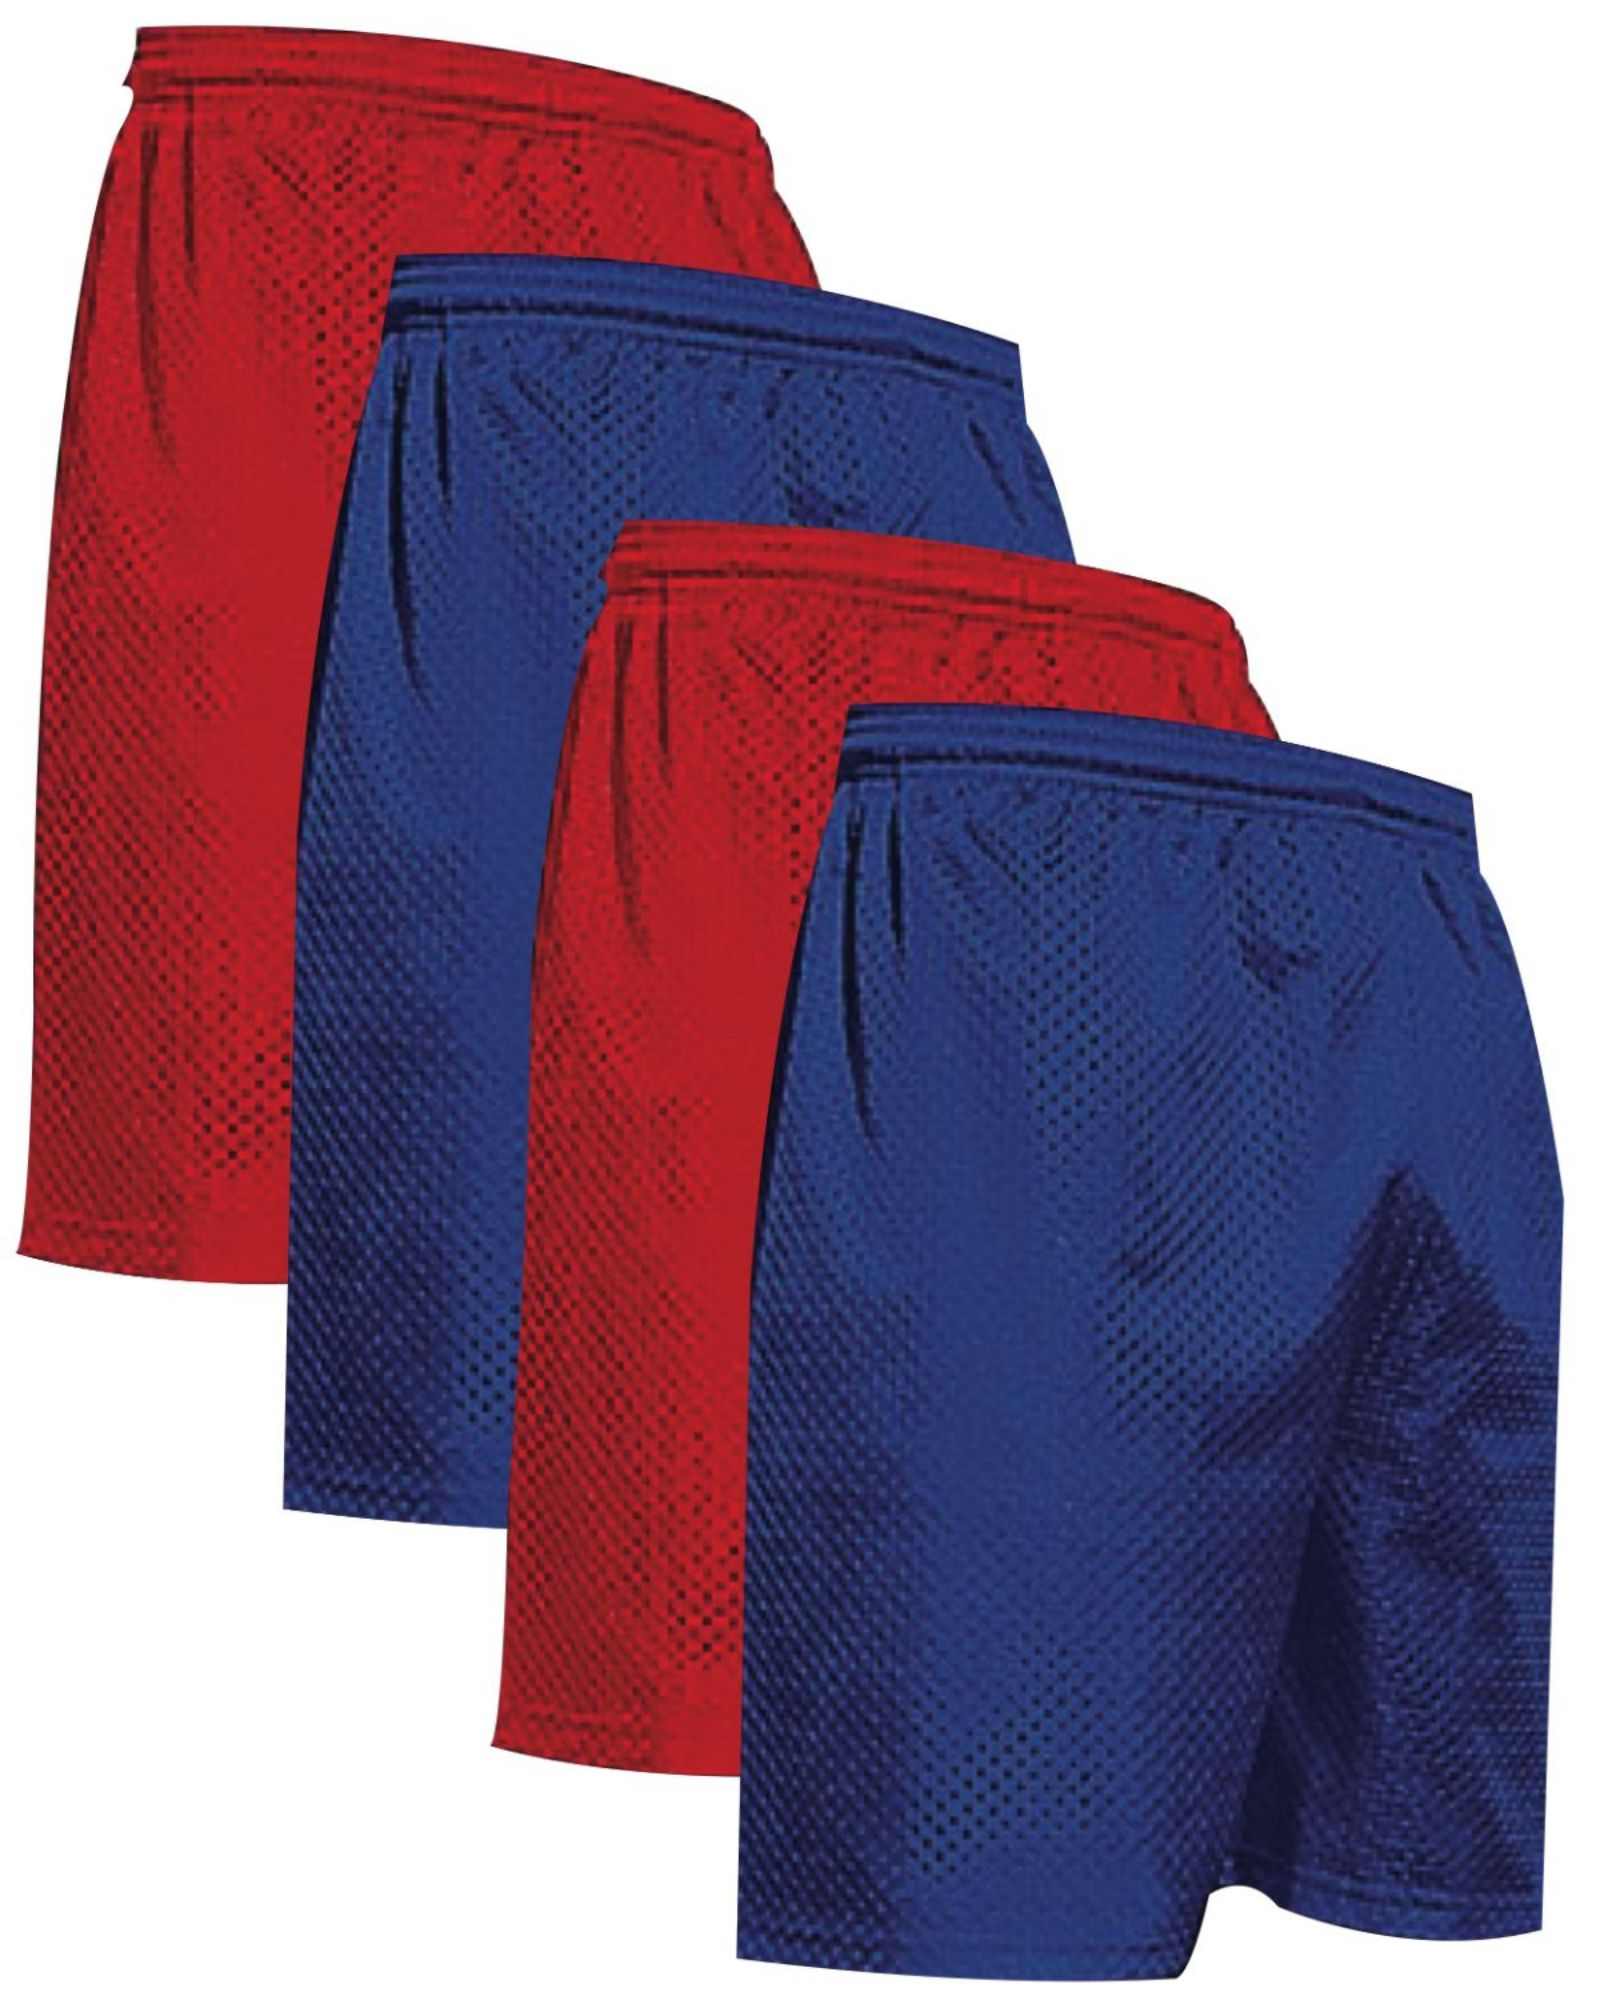 "VALUE PACK  > BUY 2 GET 2 FREE >  4 PACK > THE RAM BRAND > Men's  9"" Performance Pro Mesh Gym Champ Shorts (XS-4XL) $10 S/H is on the 1st Pack only. In this Pack: (3XL)(2Red/2Royal)"